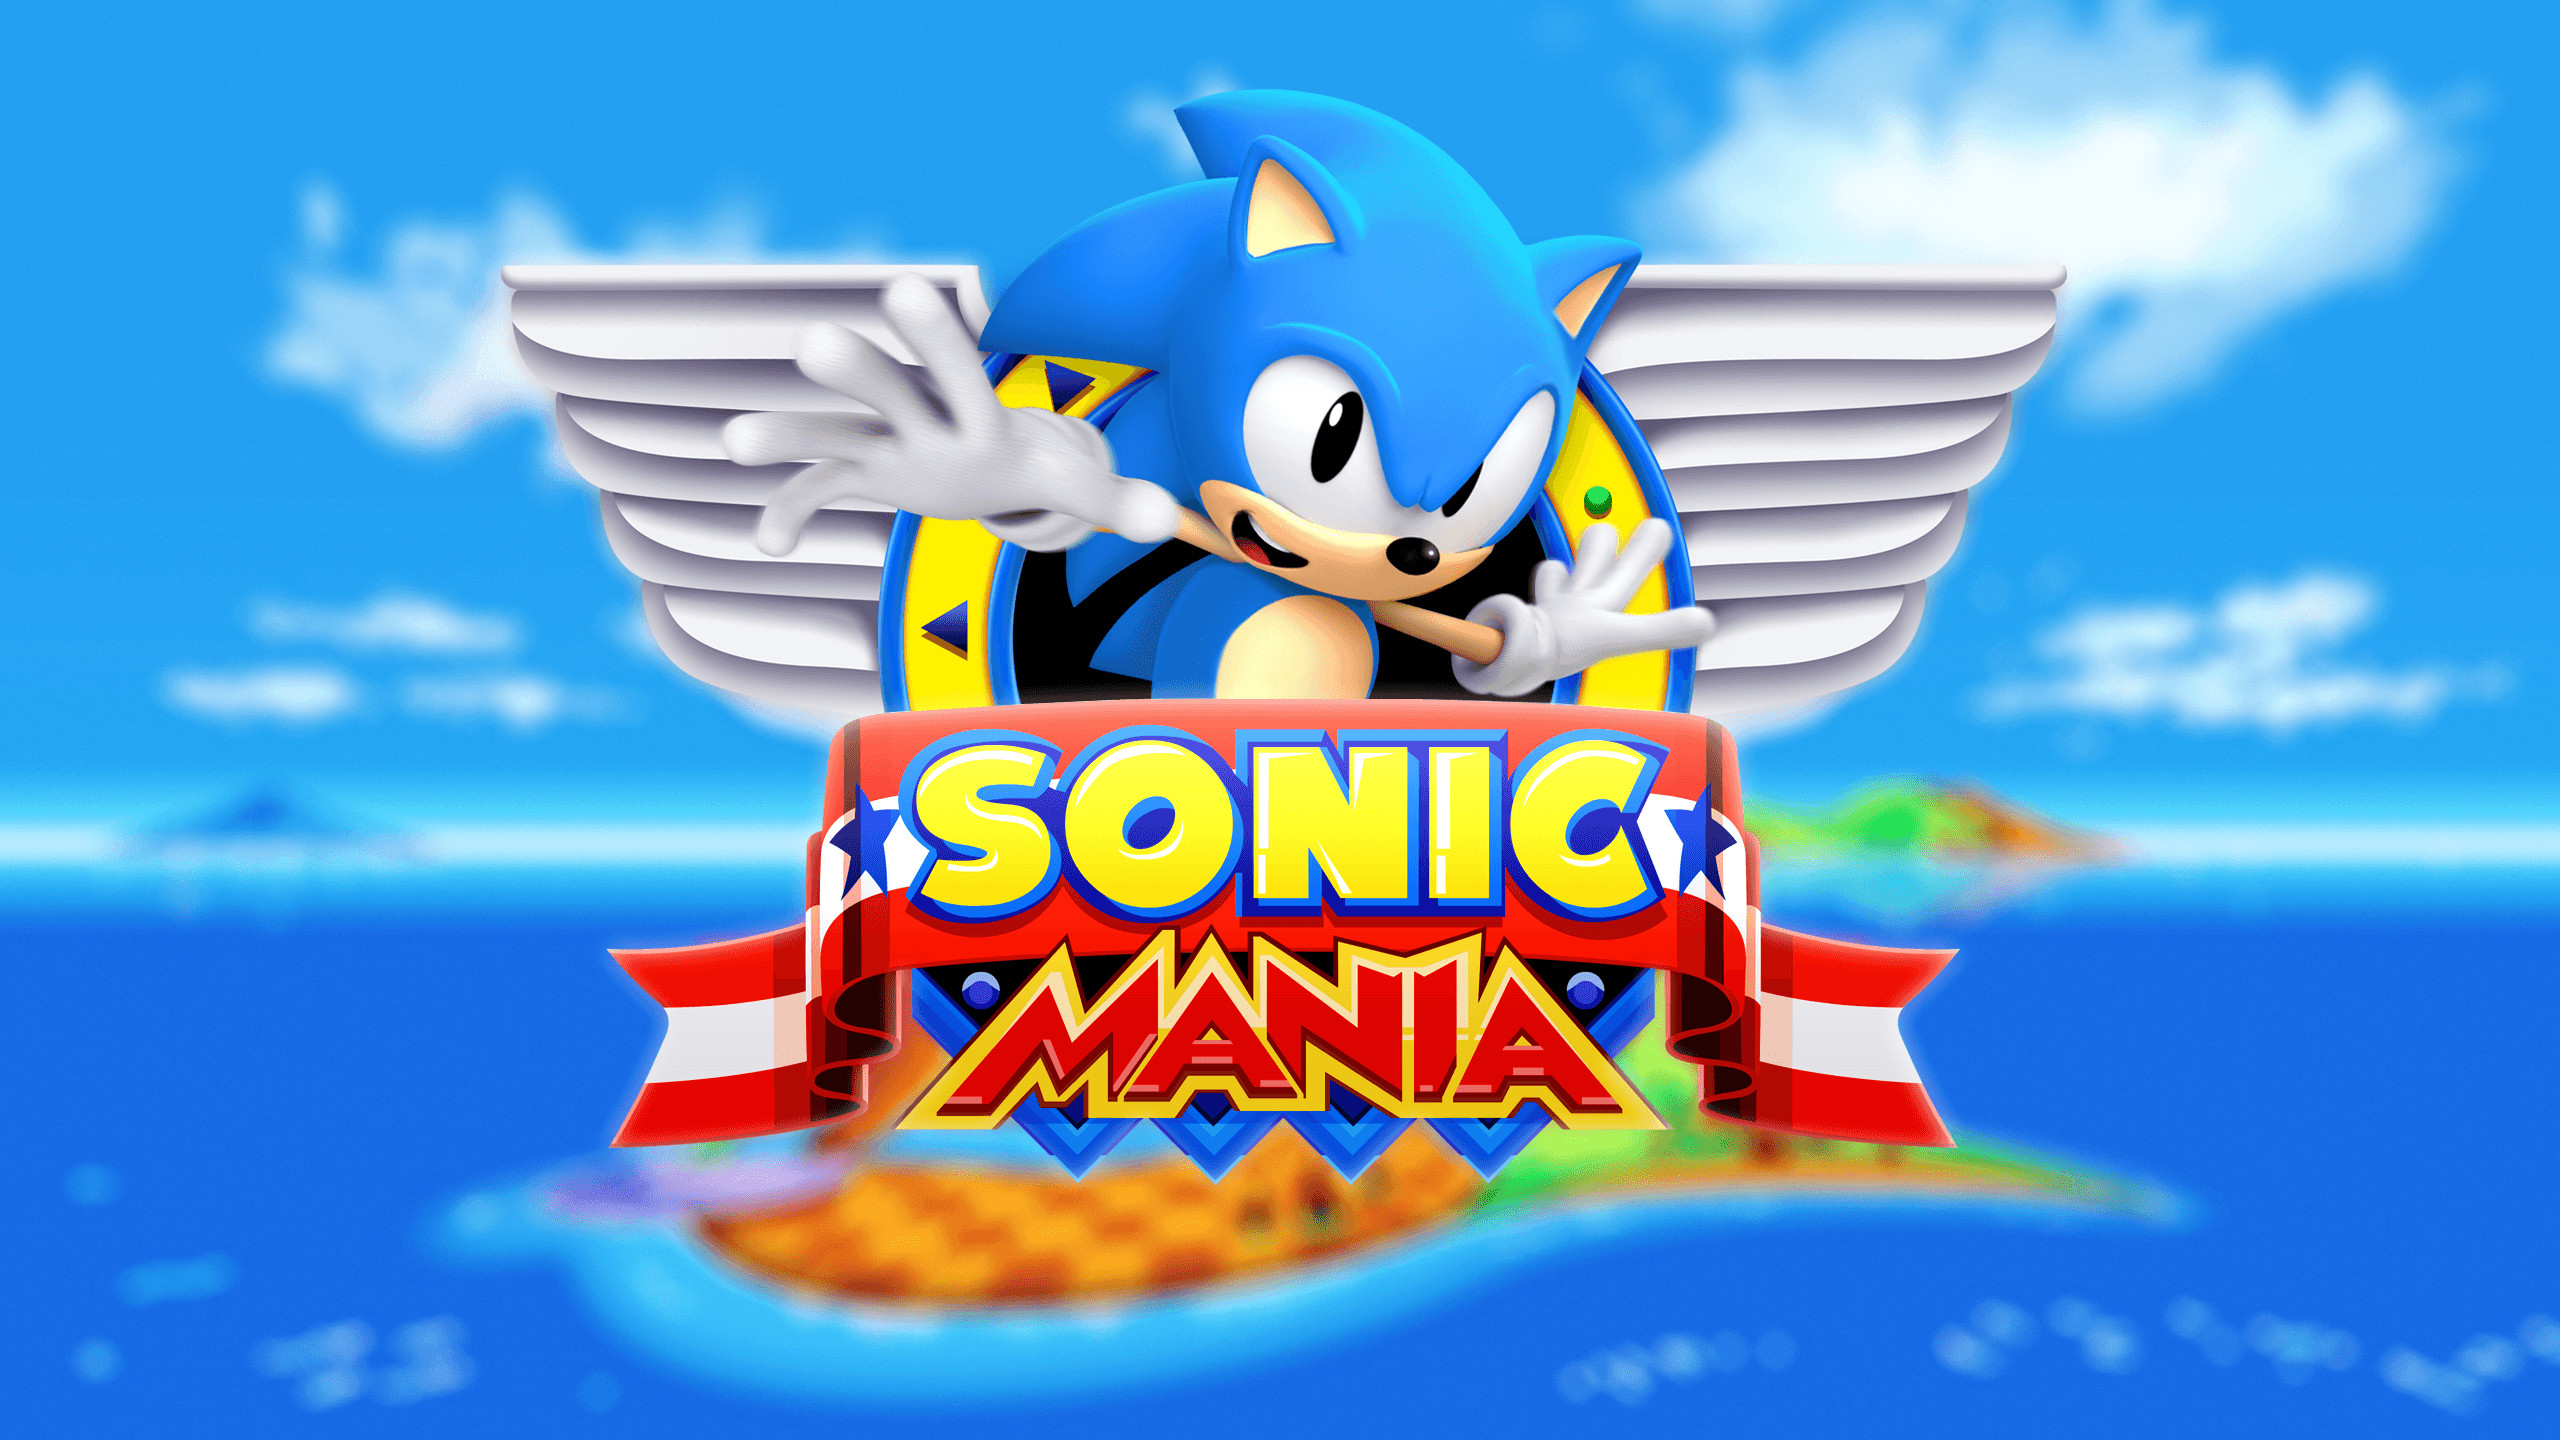 Sonic Mania Wallpaper Iphone Posted By Christopher Peltier